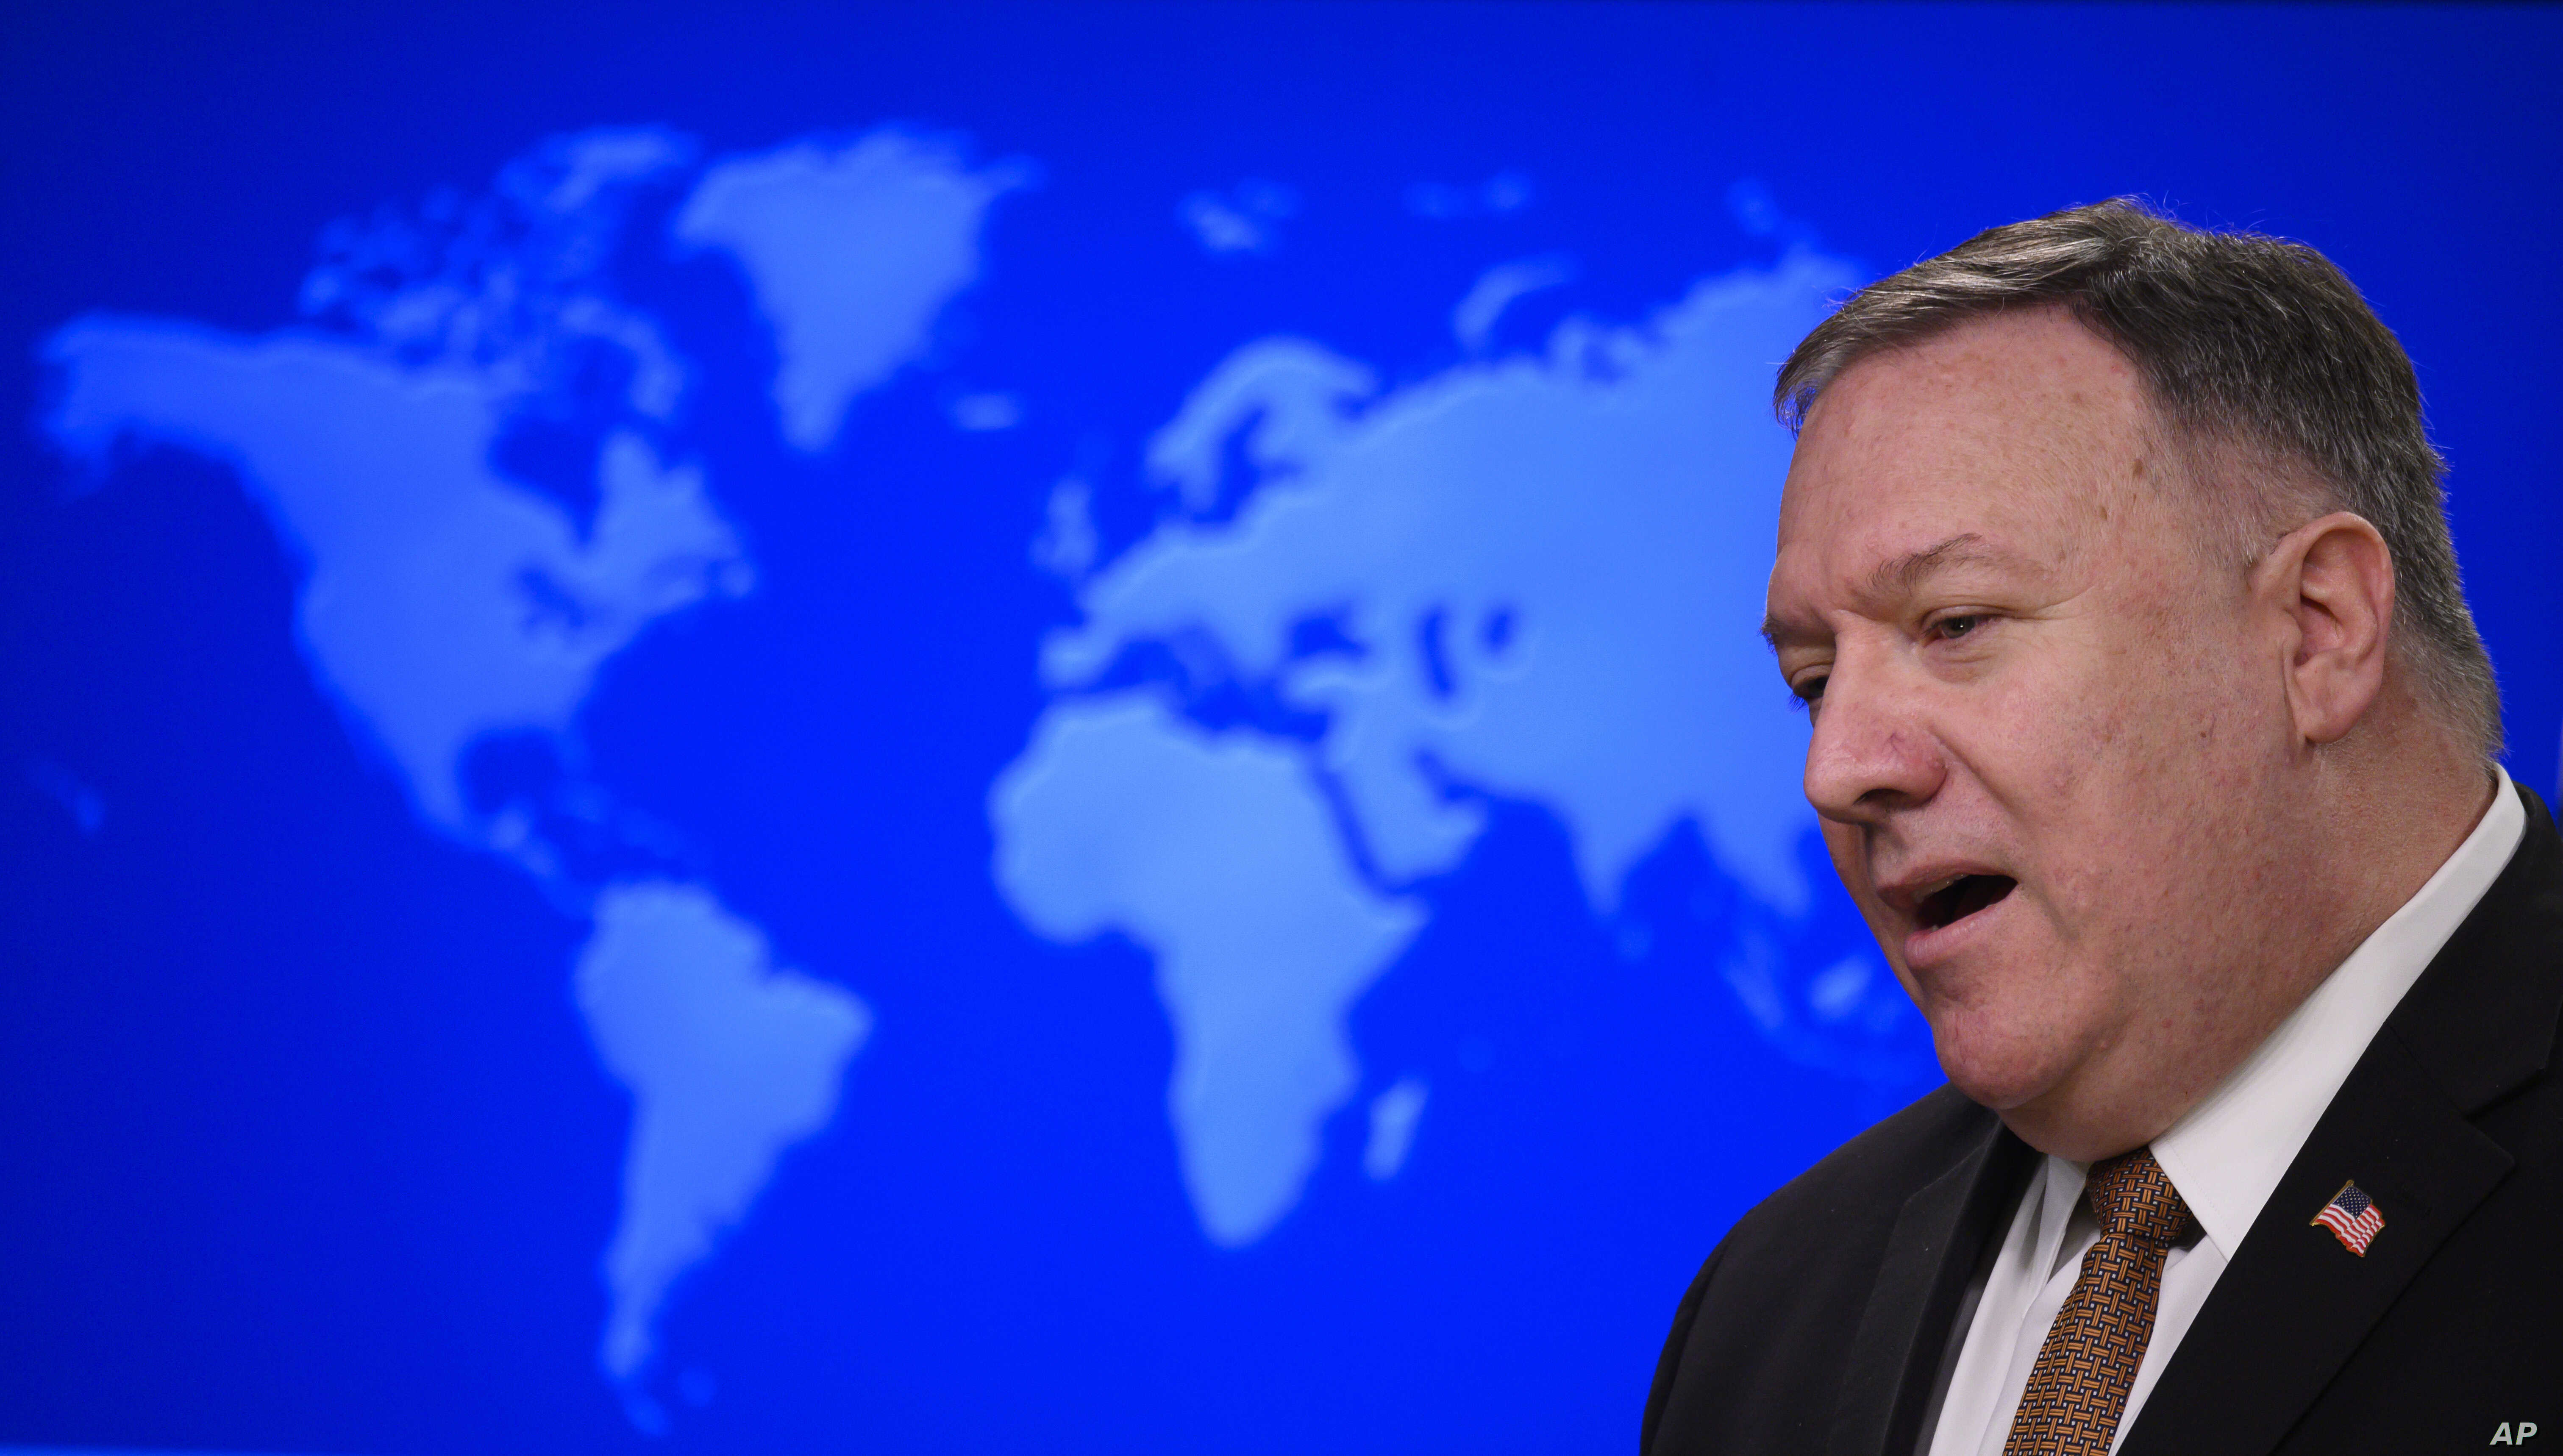 Pompeo: China spreading misinformation of origins, scale of COVID-19 outbreak